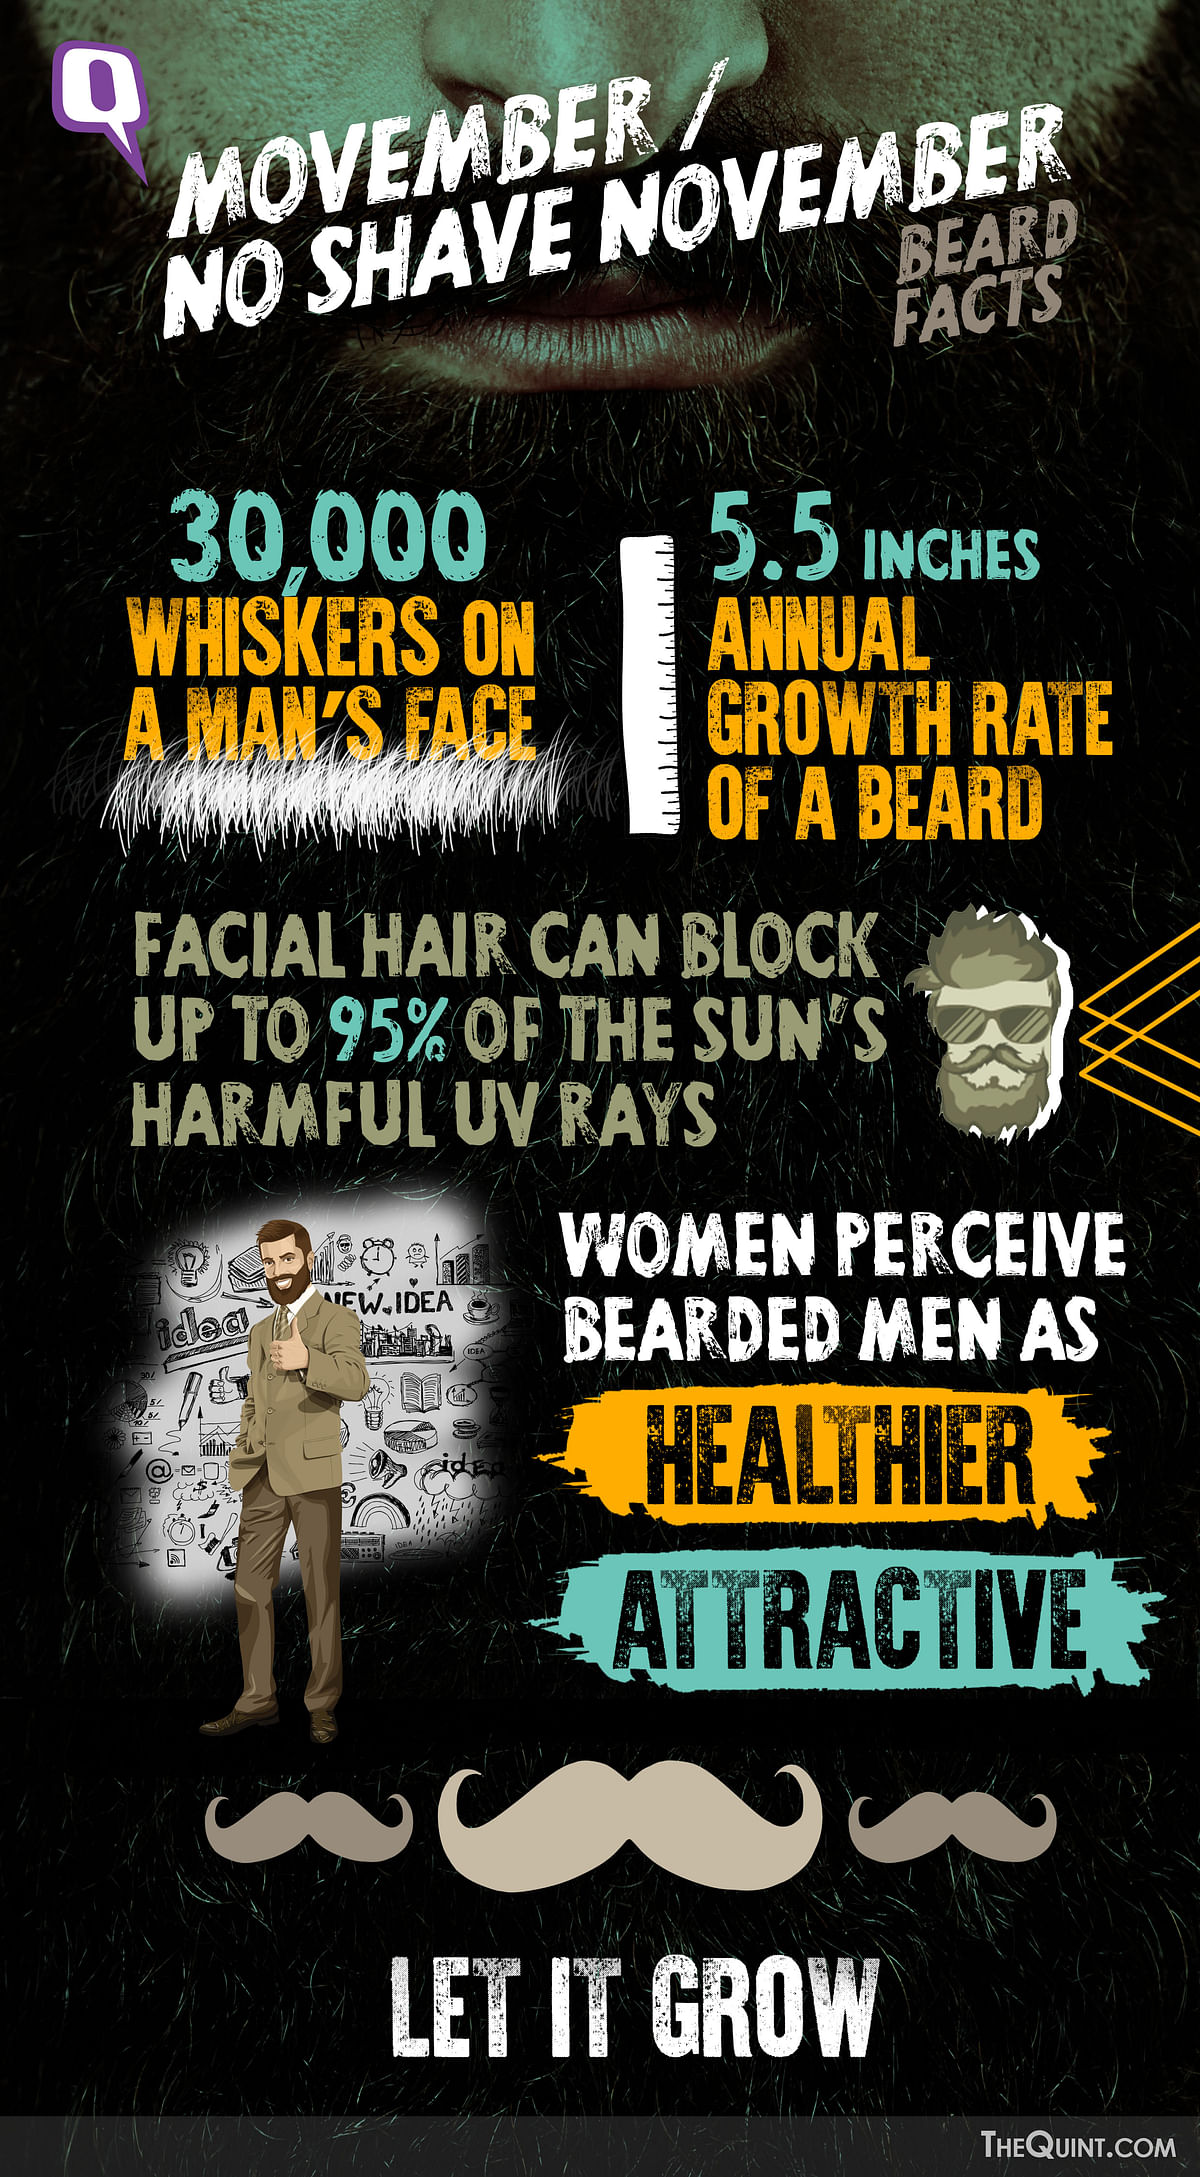 Here are some weird beard facts.